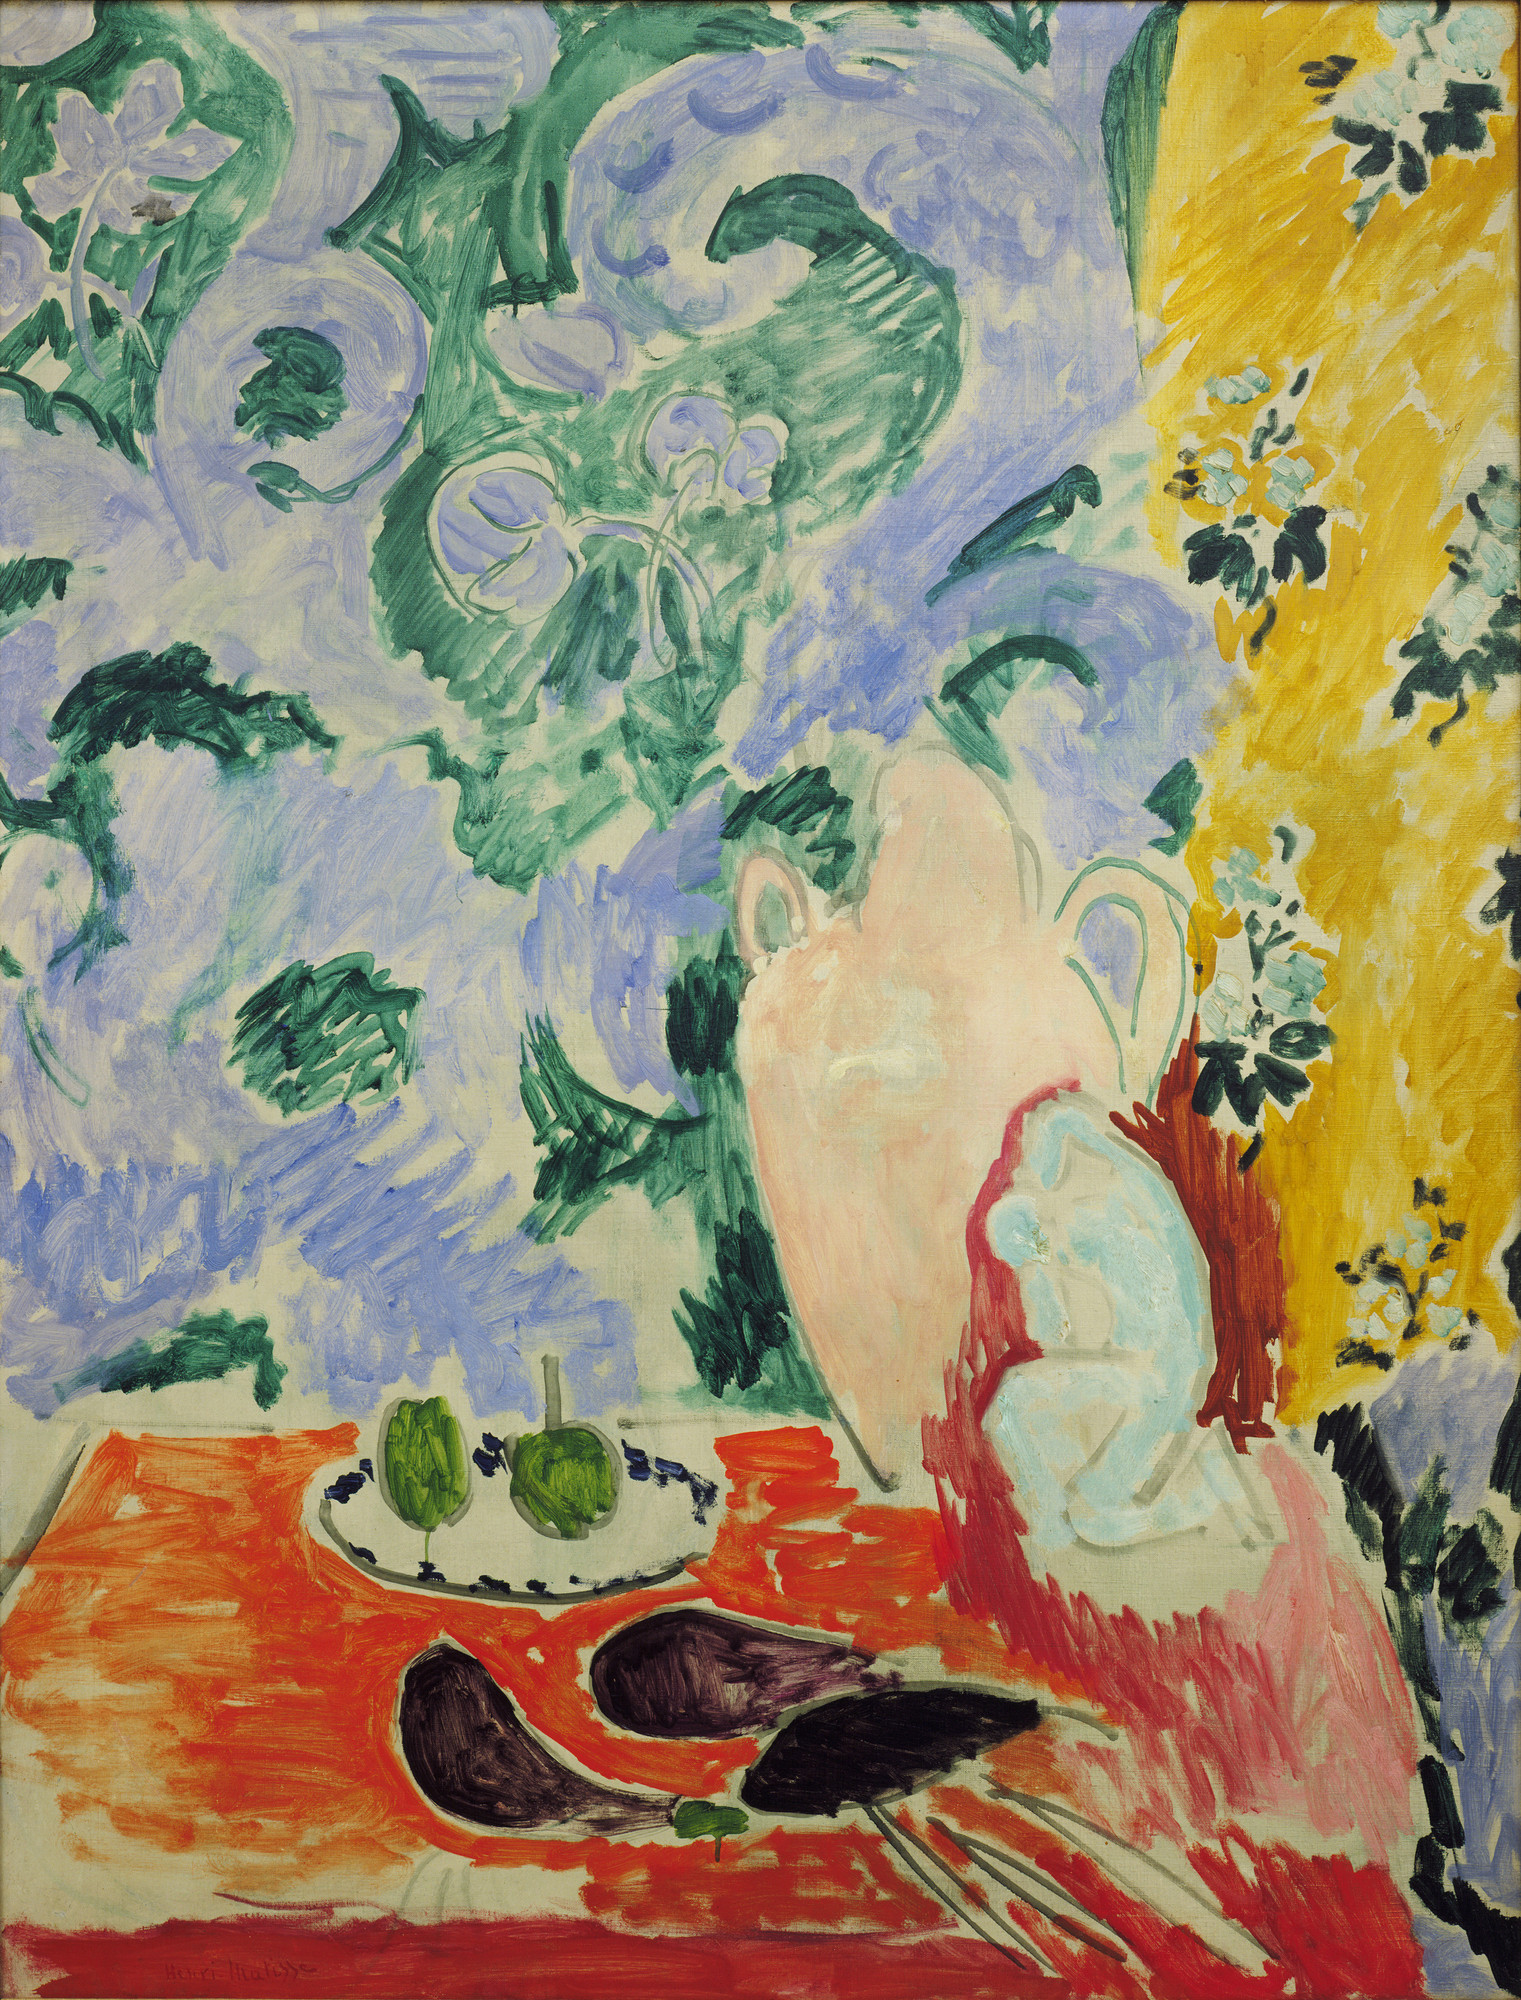 Henri Matisse. Still Life with Aubergines. Collioure, summer 1911. Oil on canvas, 45 3⁄4 × 35 1/8″ (116.2 × 89.2 cm). Louise Reinhardt Smith Bequest. © 2016 Succession H. Matisse / Artists Rights Society (ARS), New York